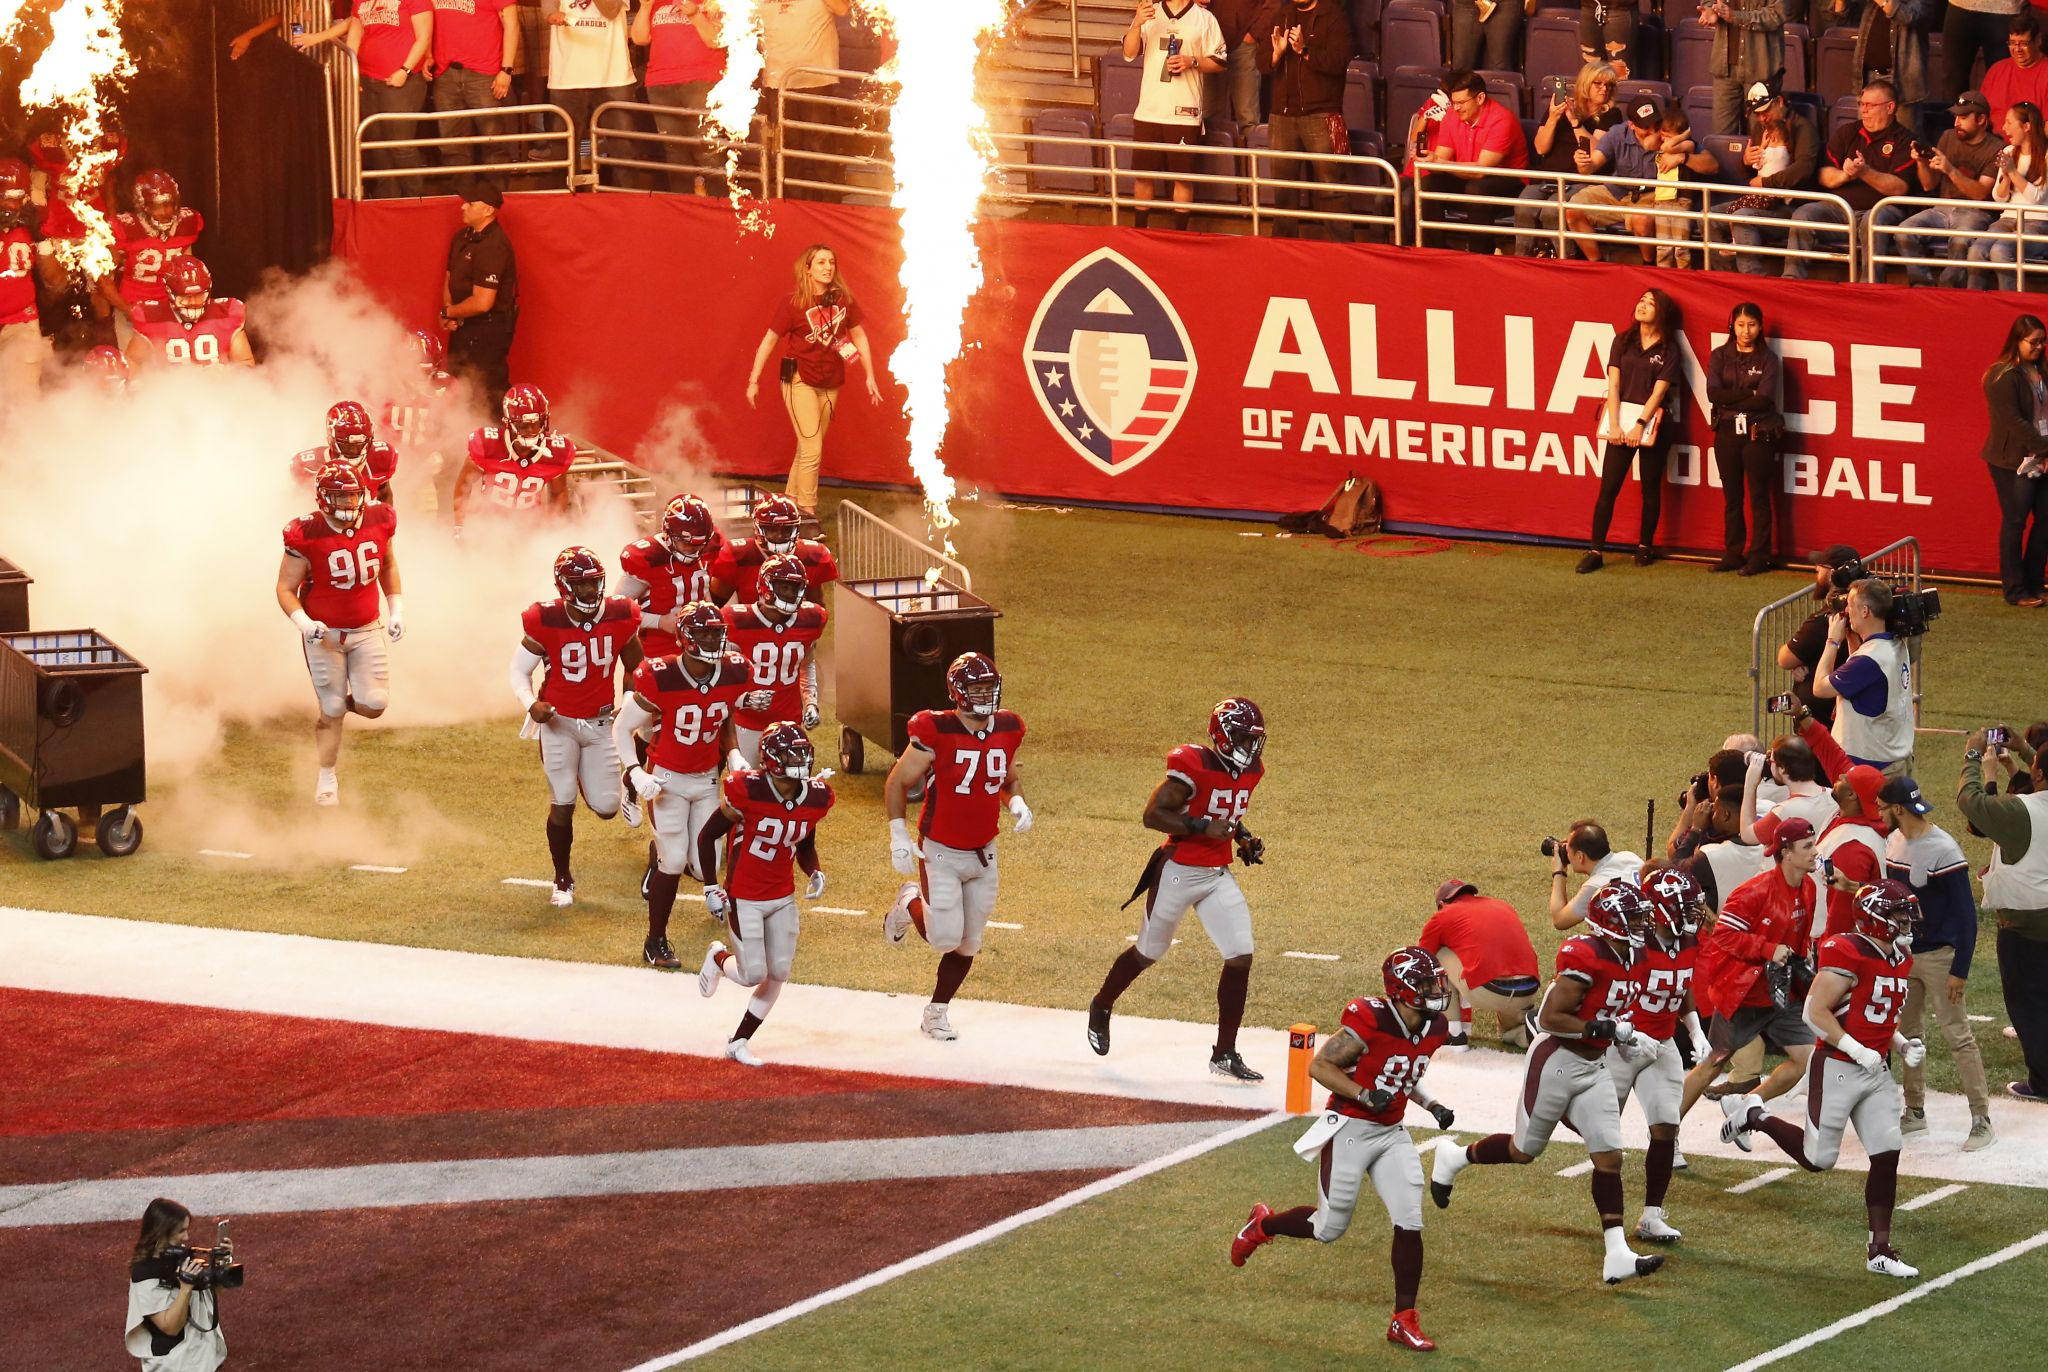 The AAF reportedly needed a $250 million bailout to stay afloat after just one week